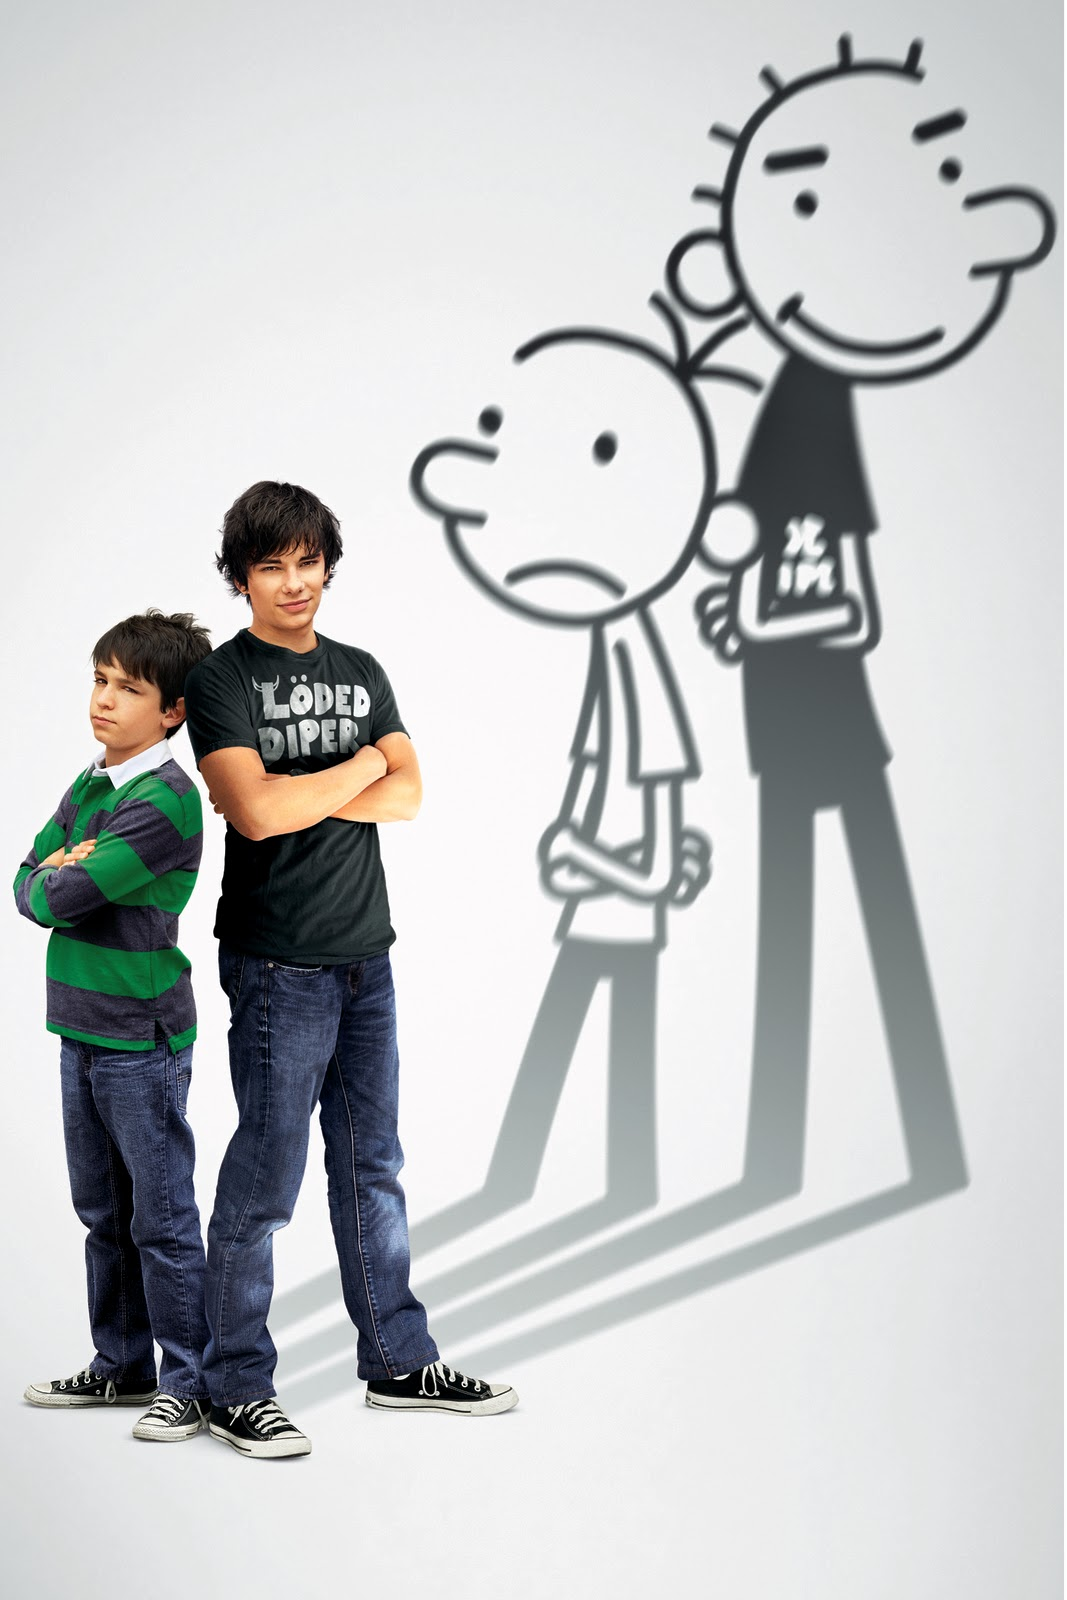 Diary of a Wimpy Kid   Rodrick Rules Diary Of A Wimpy Kid Rodrick Rules Book Pictures